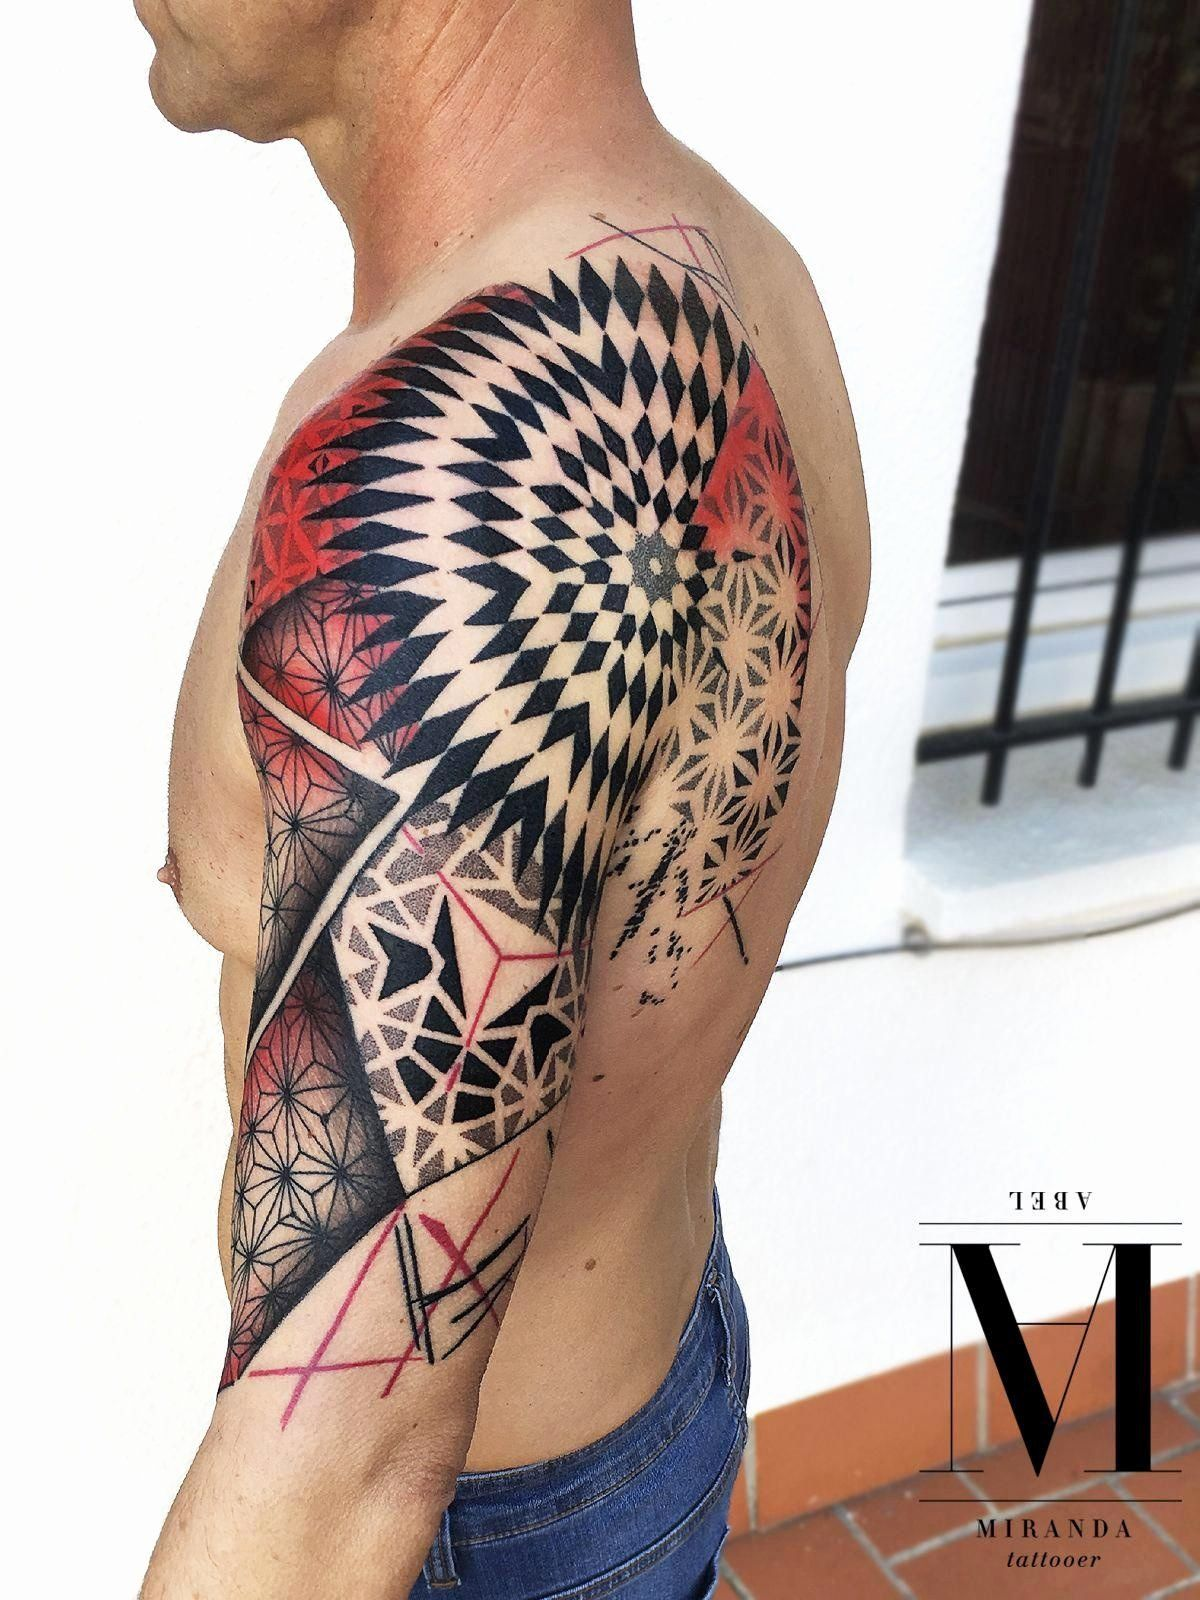 Tattoo Website Design Inspirational Tattoos Tattoo Tribal 3d Design Enchanting Geometric In 2020 Geometric Tattoo Tattoos Trash Polka